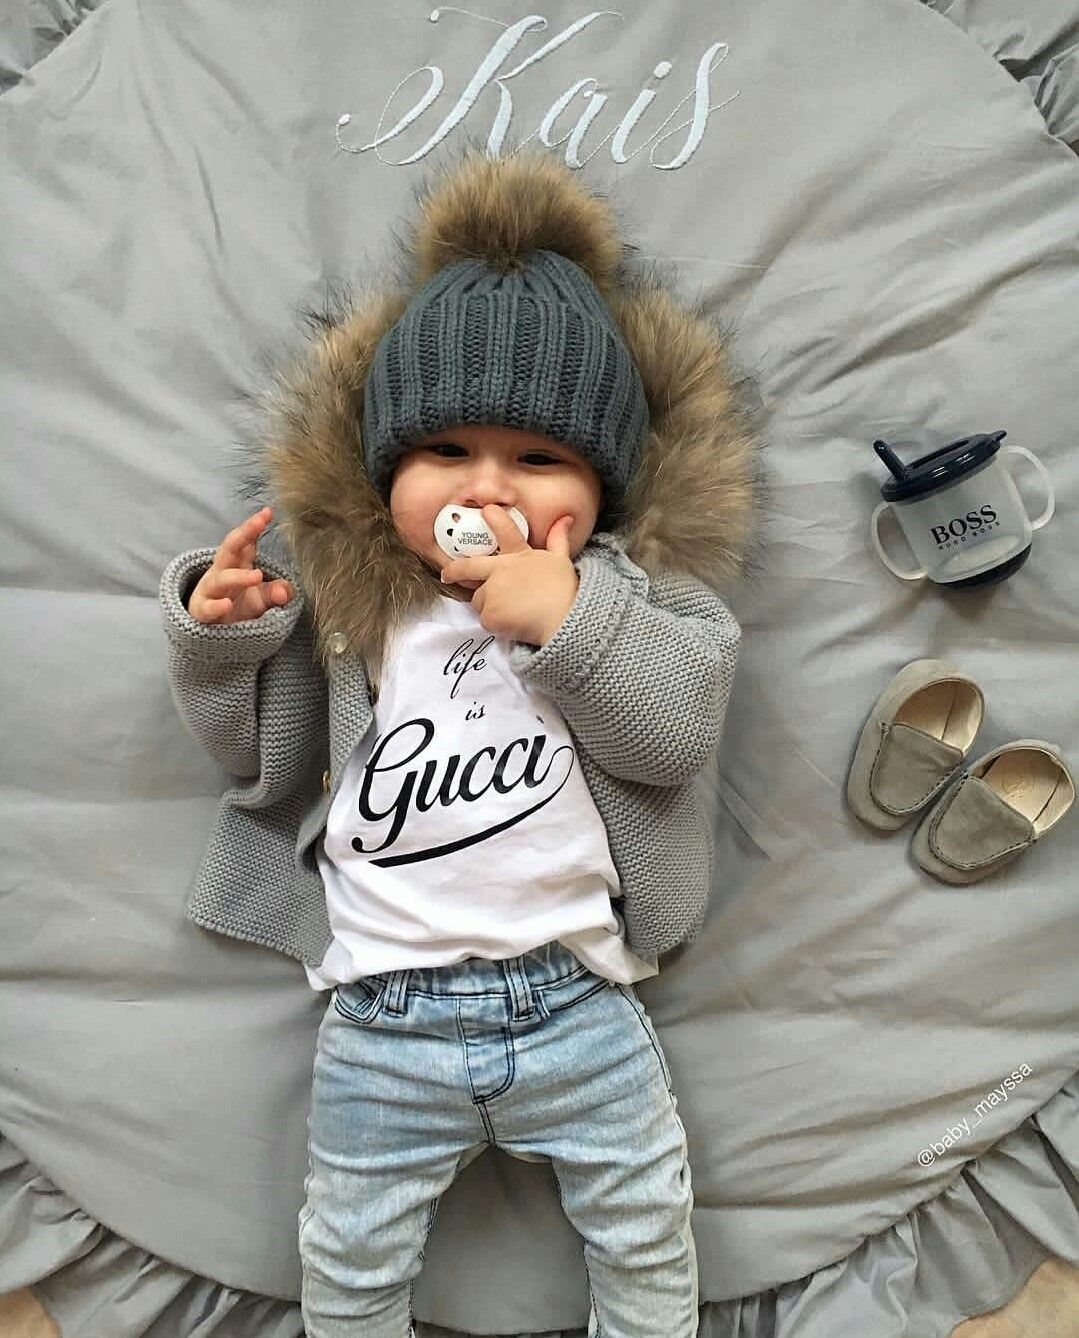 d63b90d02 Gucci baby | Baby & Infant wear | Baby boy swag, Gucci baby, Baby